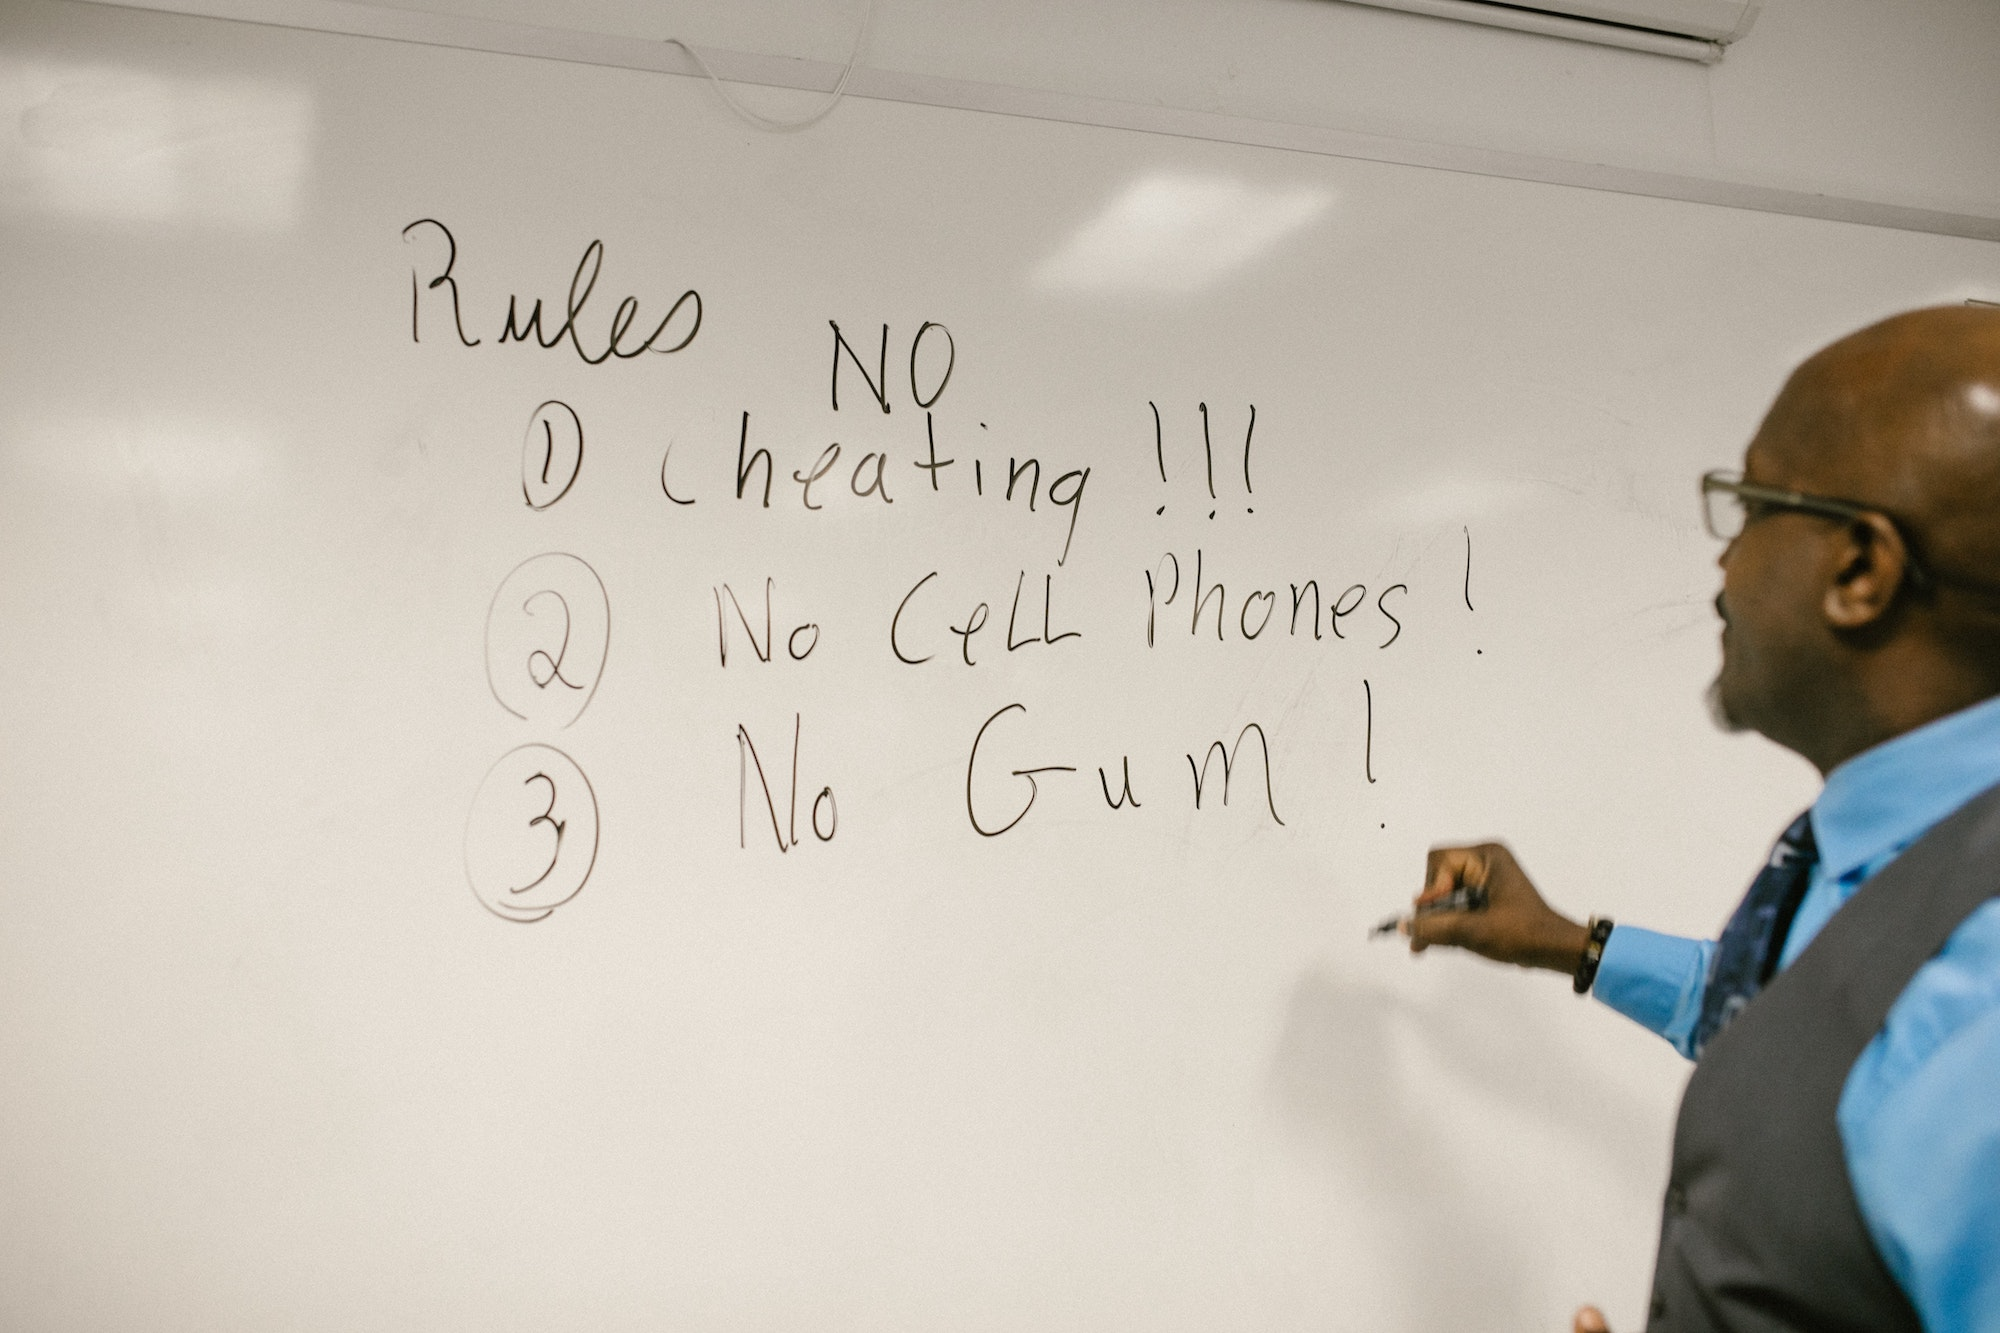 ESL teachers should lay out the necessary ground rules from the start of the class